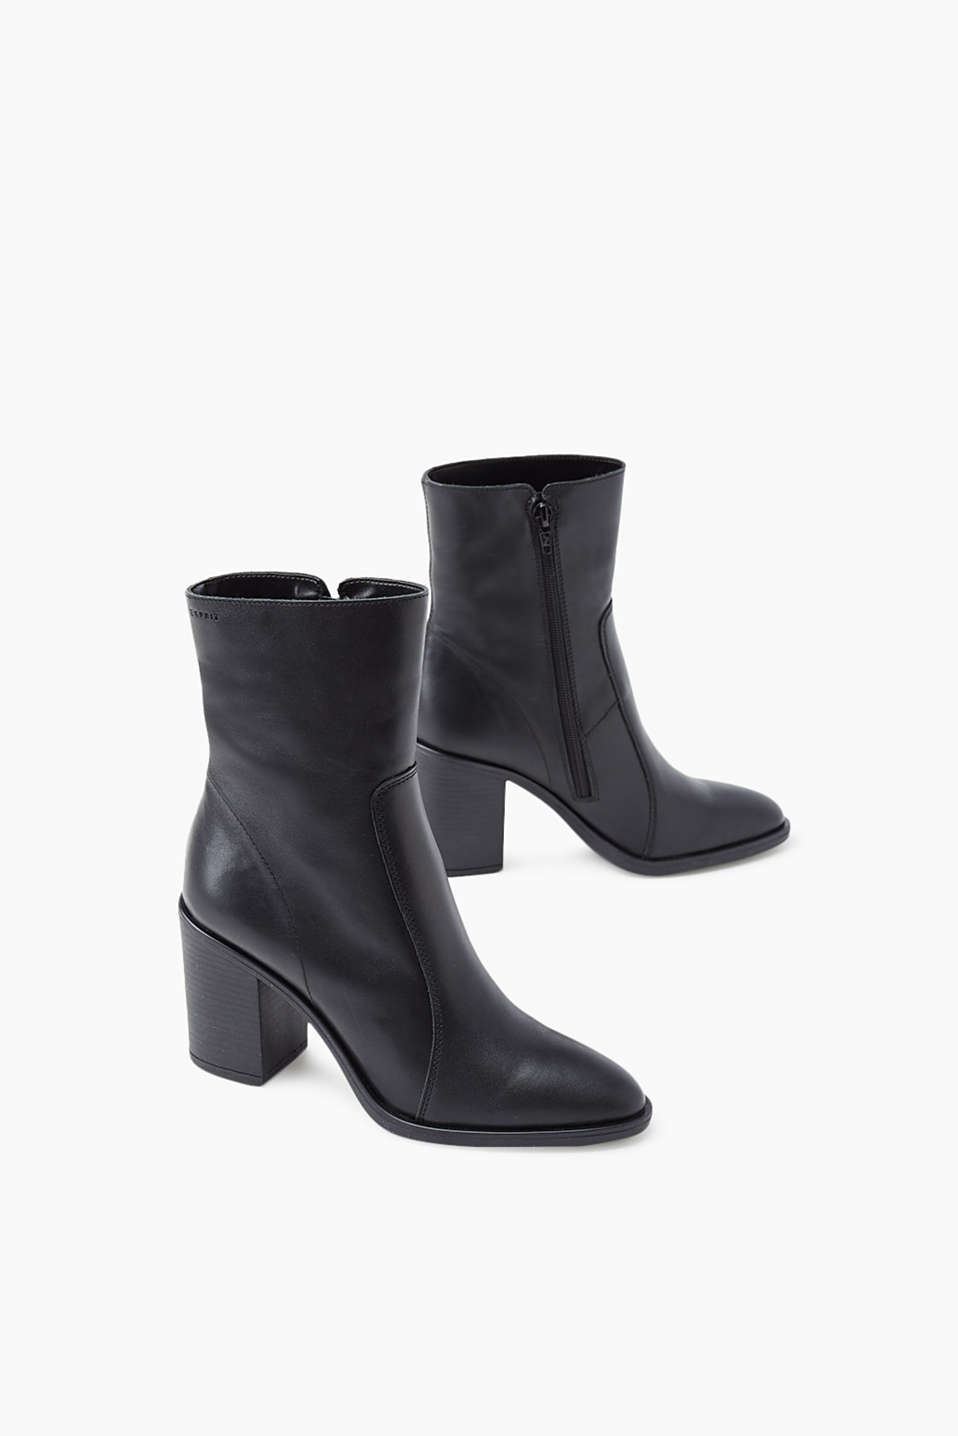 info for d3f52 66e17 Ankle boots in smooth leather + block heel